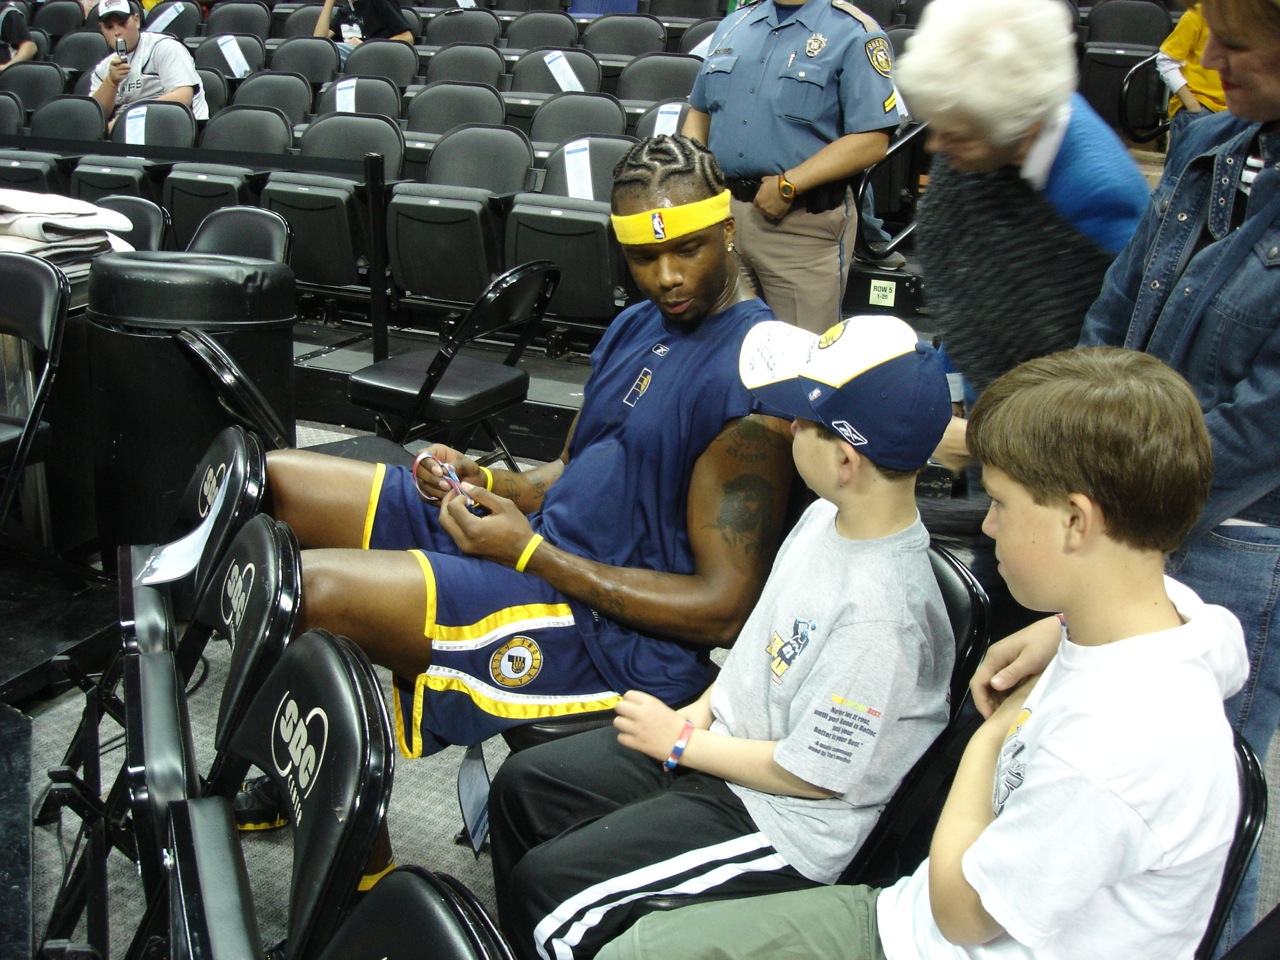 Sharing his Be Hopeful Bracelet with Jermaine O'Neal during a Spurs Game. Photo courtesy of the Edelen family.